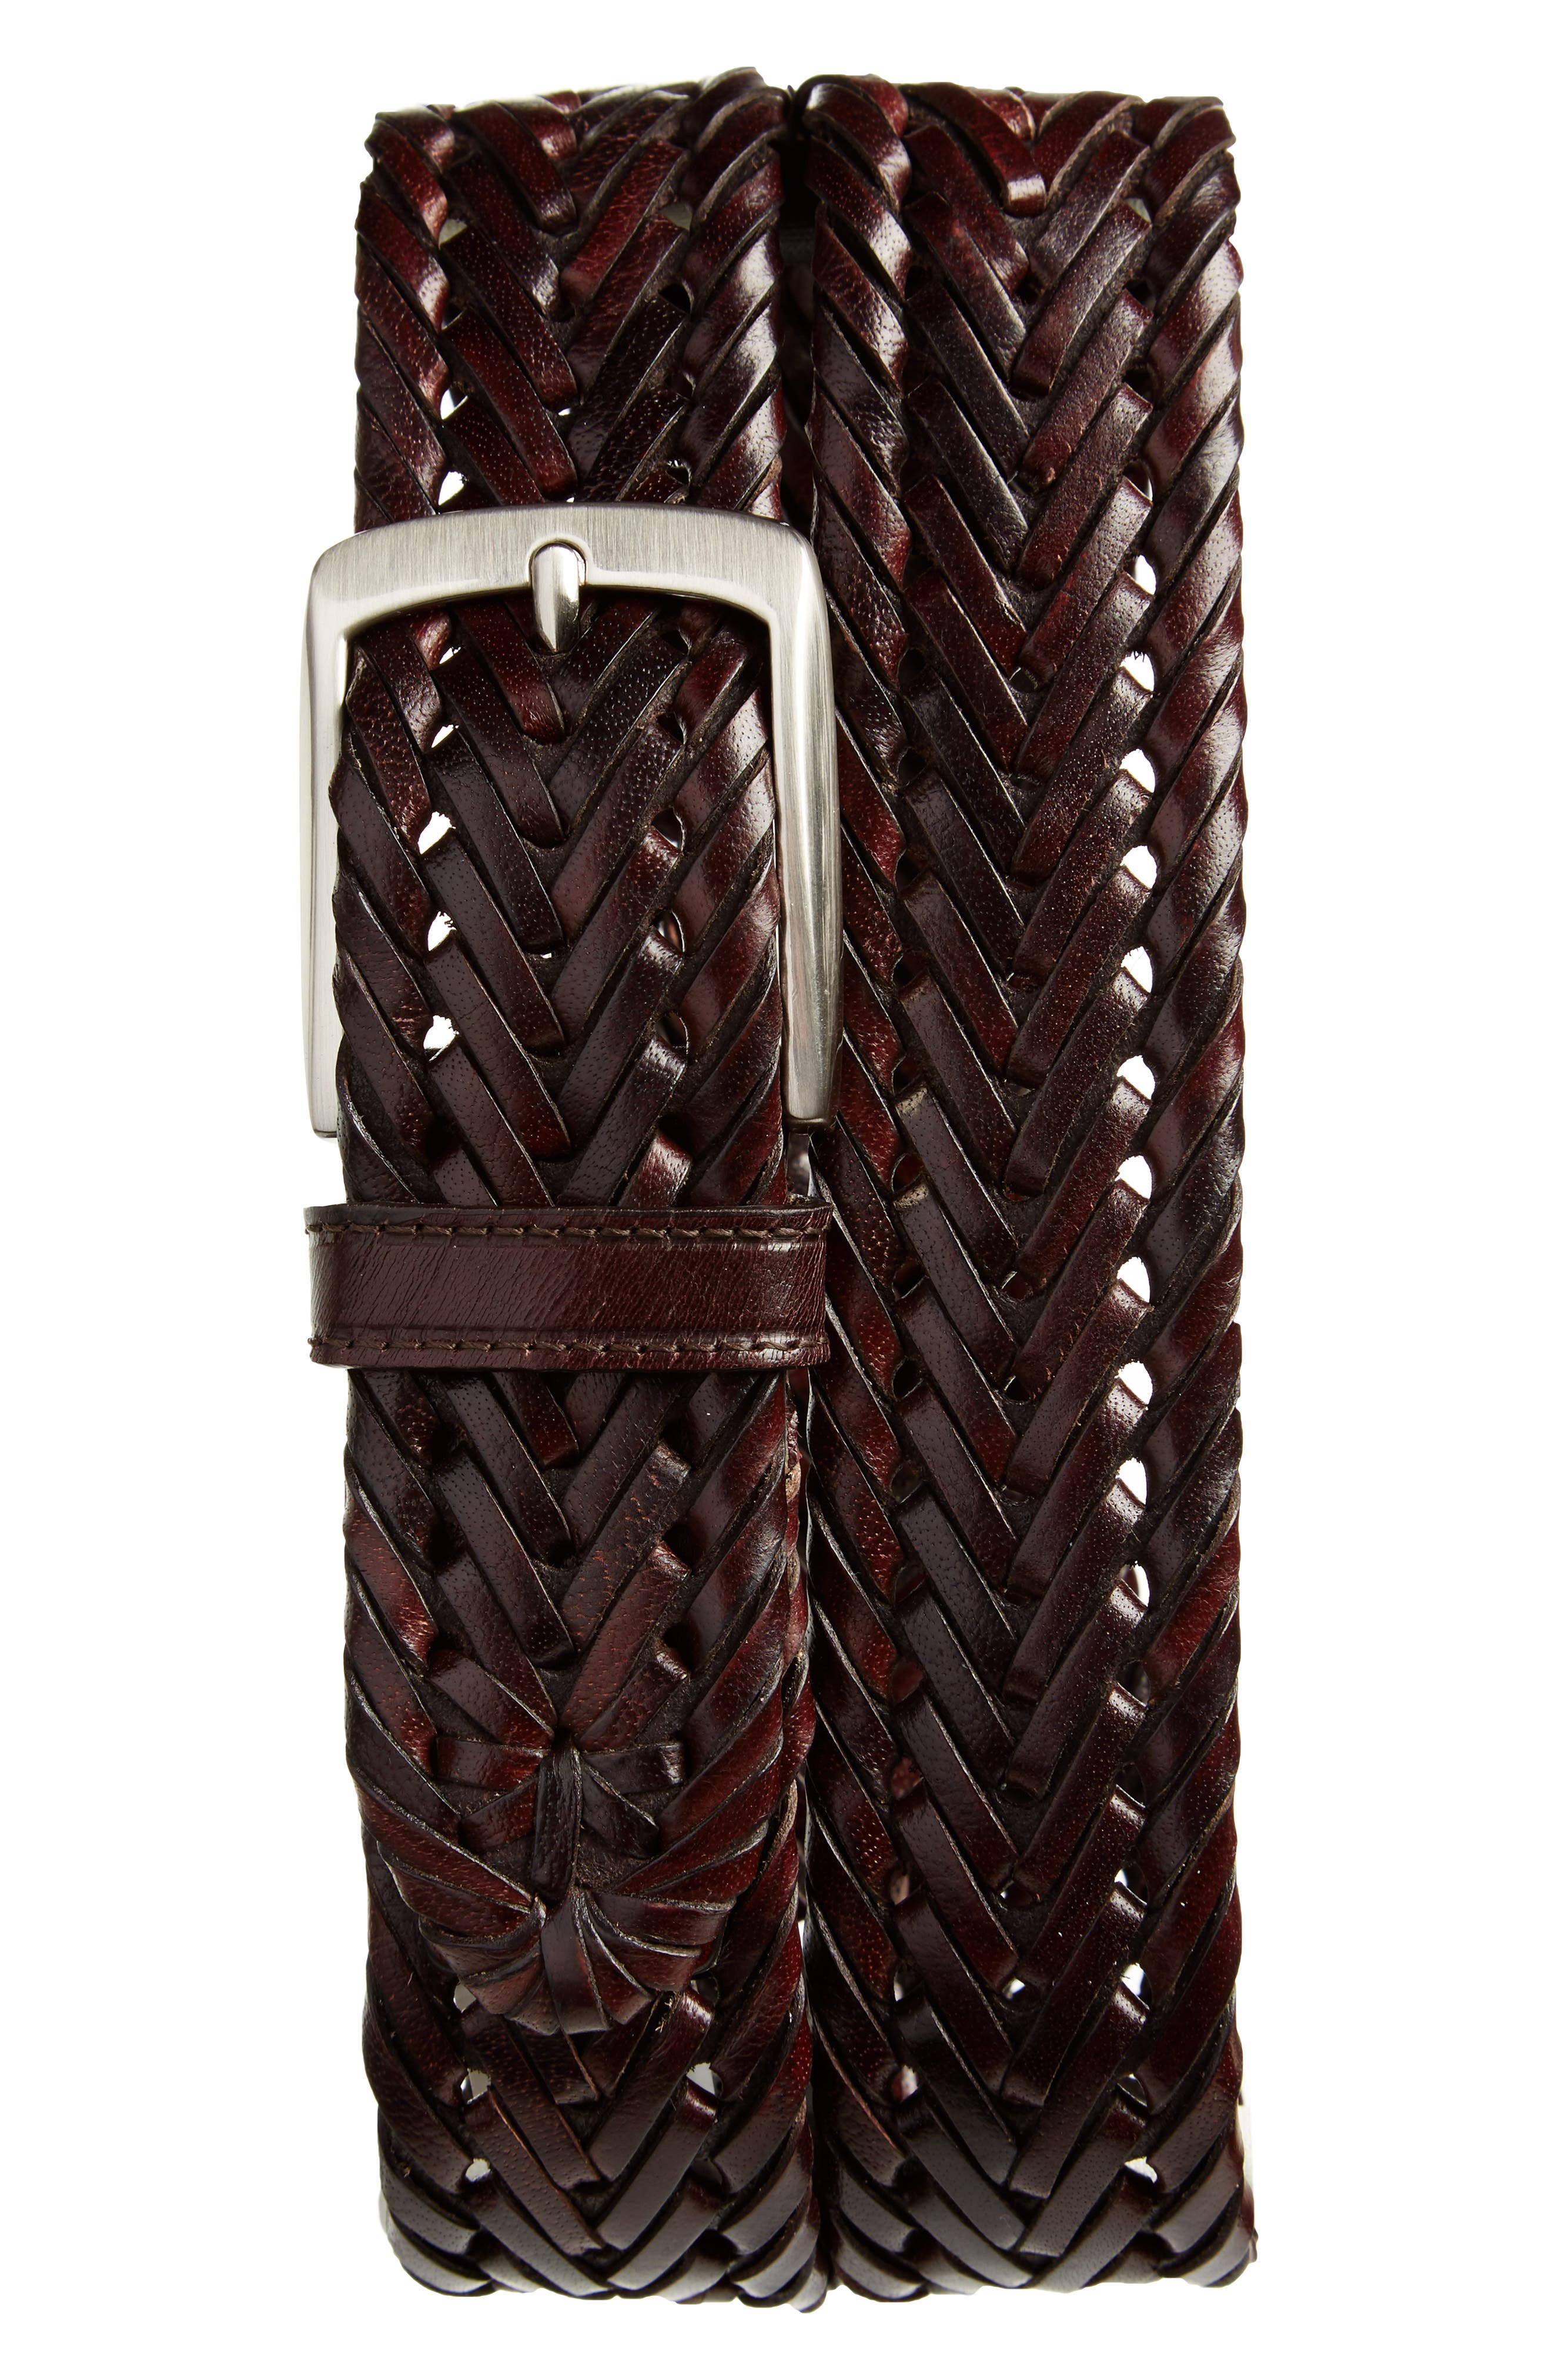 Enzo Braided Leather Belt,                             Main thumbnail 1, color,                             200